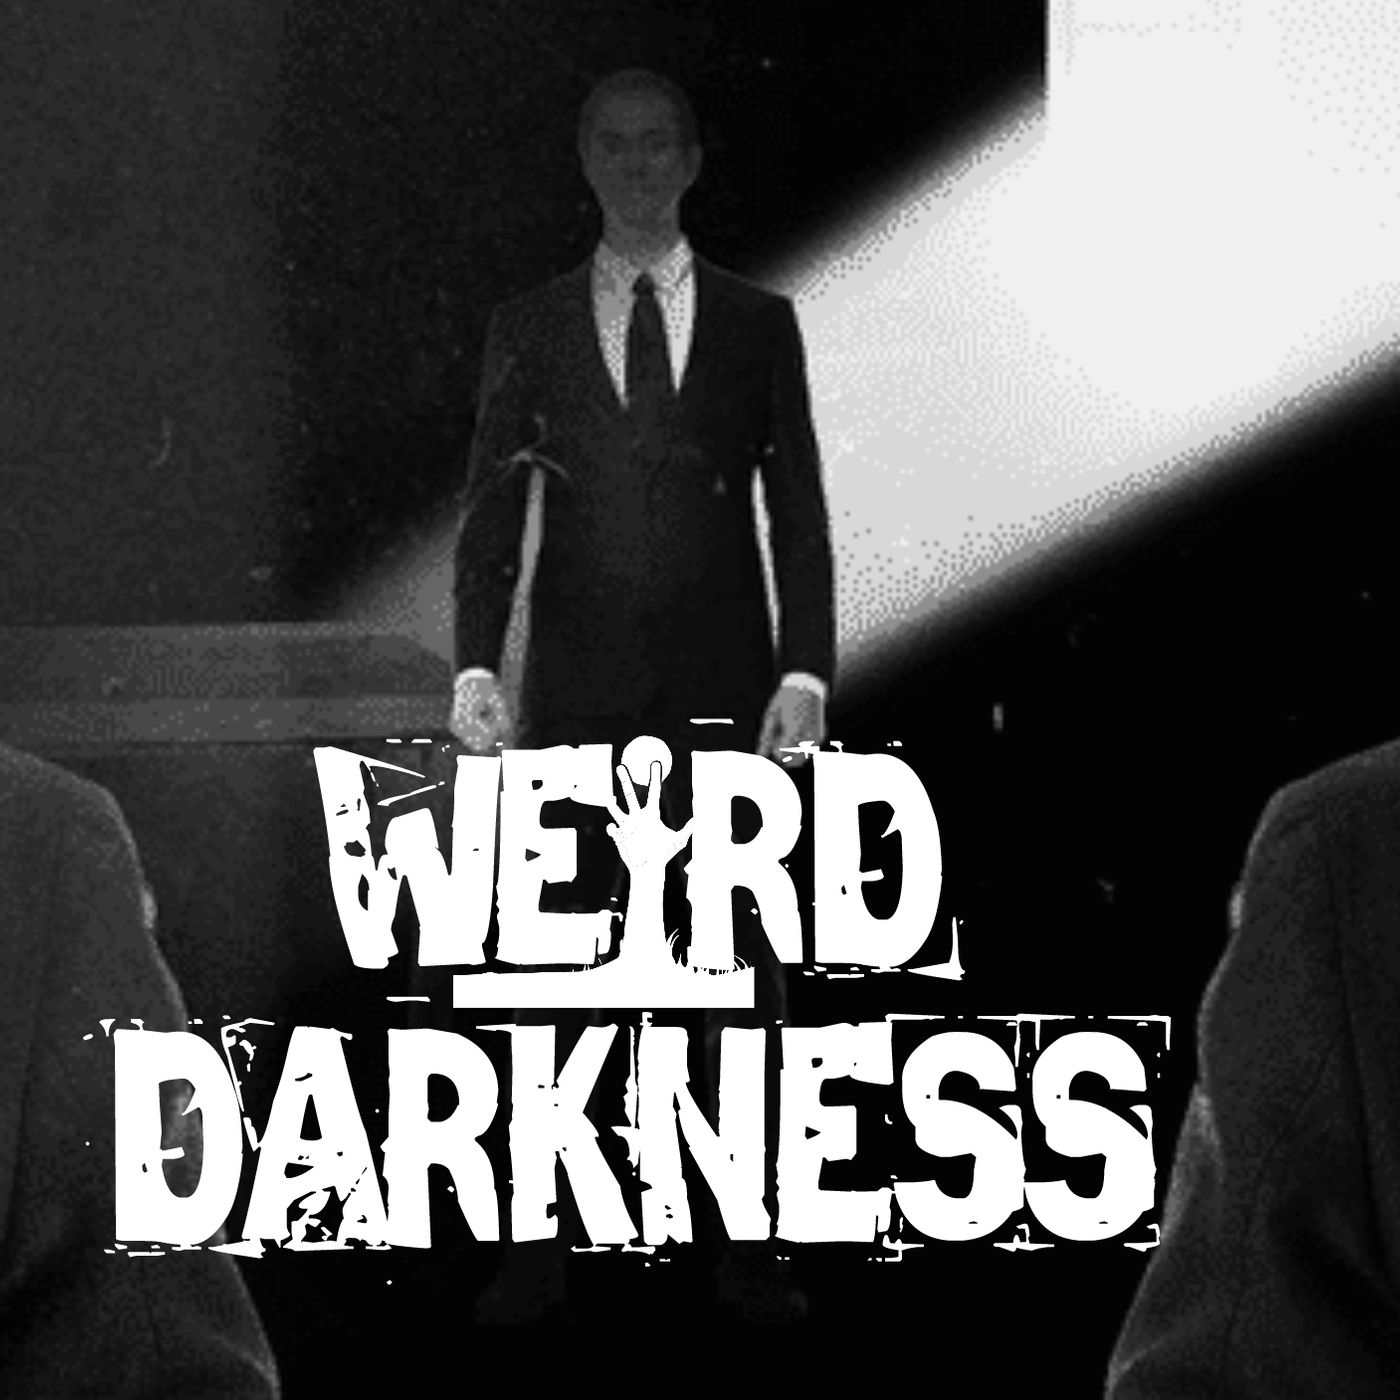 """""""ALBERT BENDER AND THE MEN IN BLACK"""" and 9 More Terrifying True Paranormal Stories! #WeirdDarkness"""